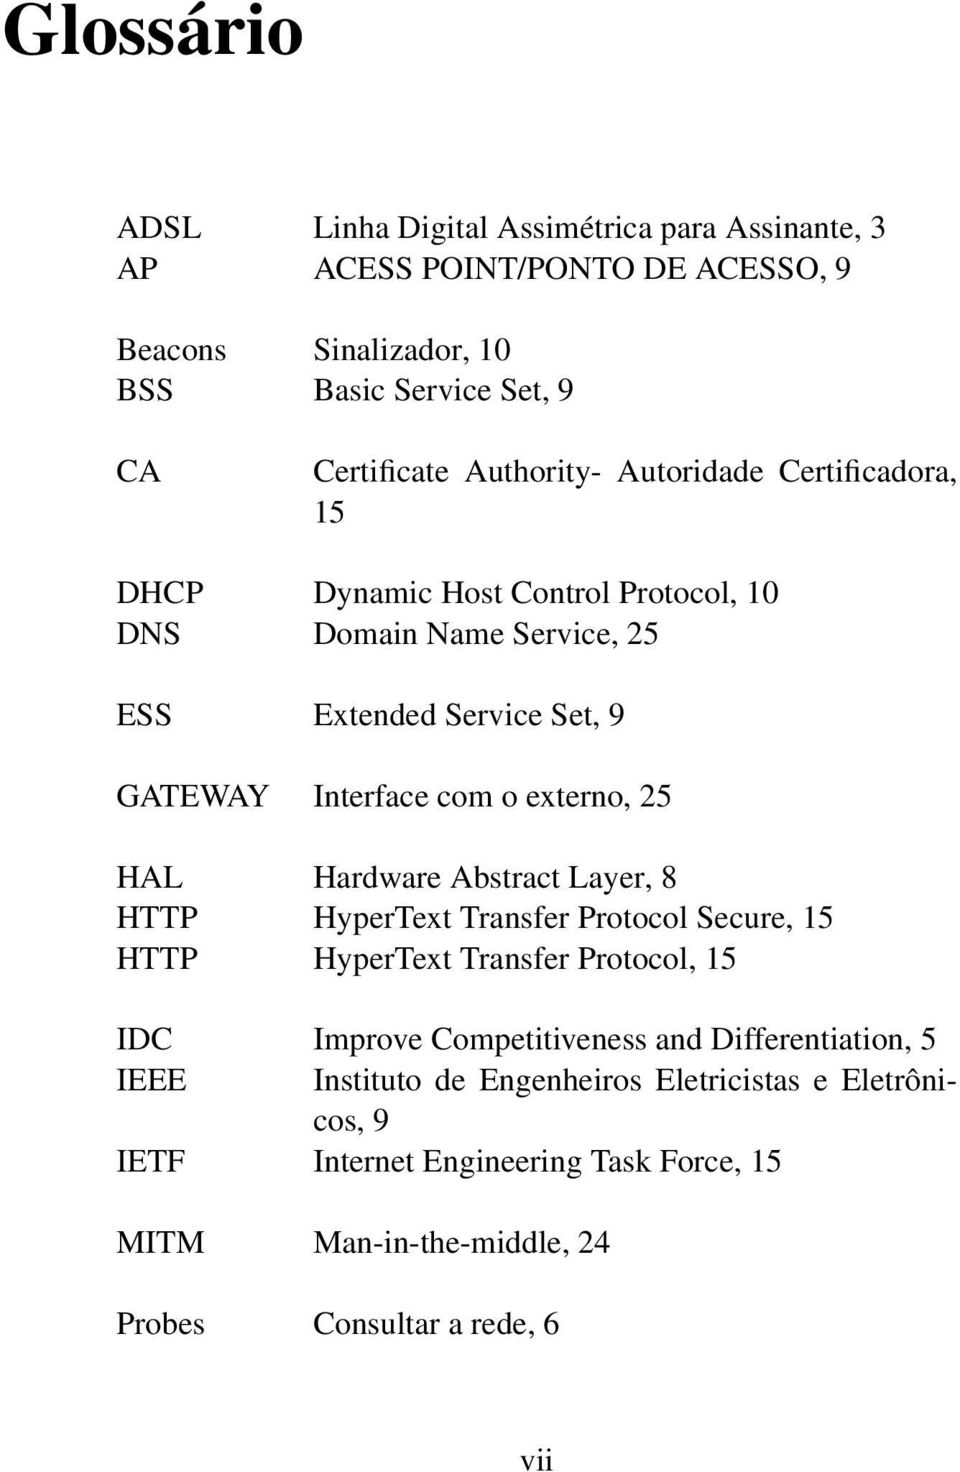 externo, 25 HAL Hardware Abstract Layer, 8 HTTP HyperText Transfer Protocol Secure, 15 HTTP HyperText Transfer Protocol, 15 IDC Improve Competitiveness and